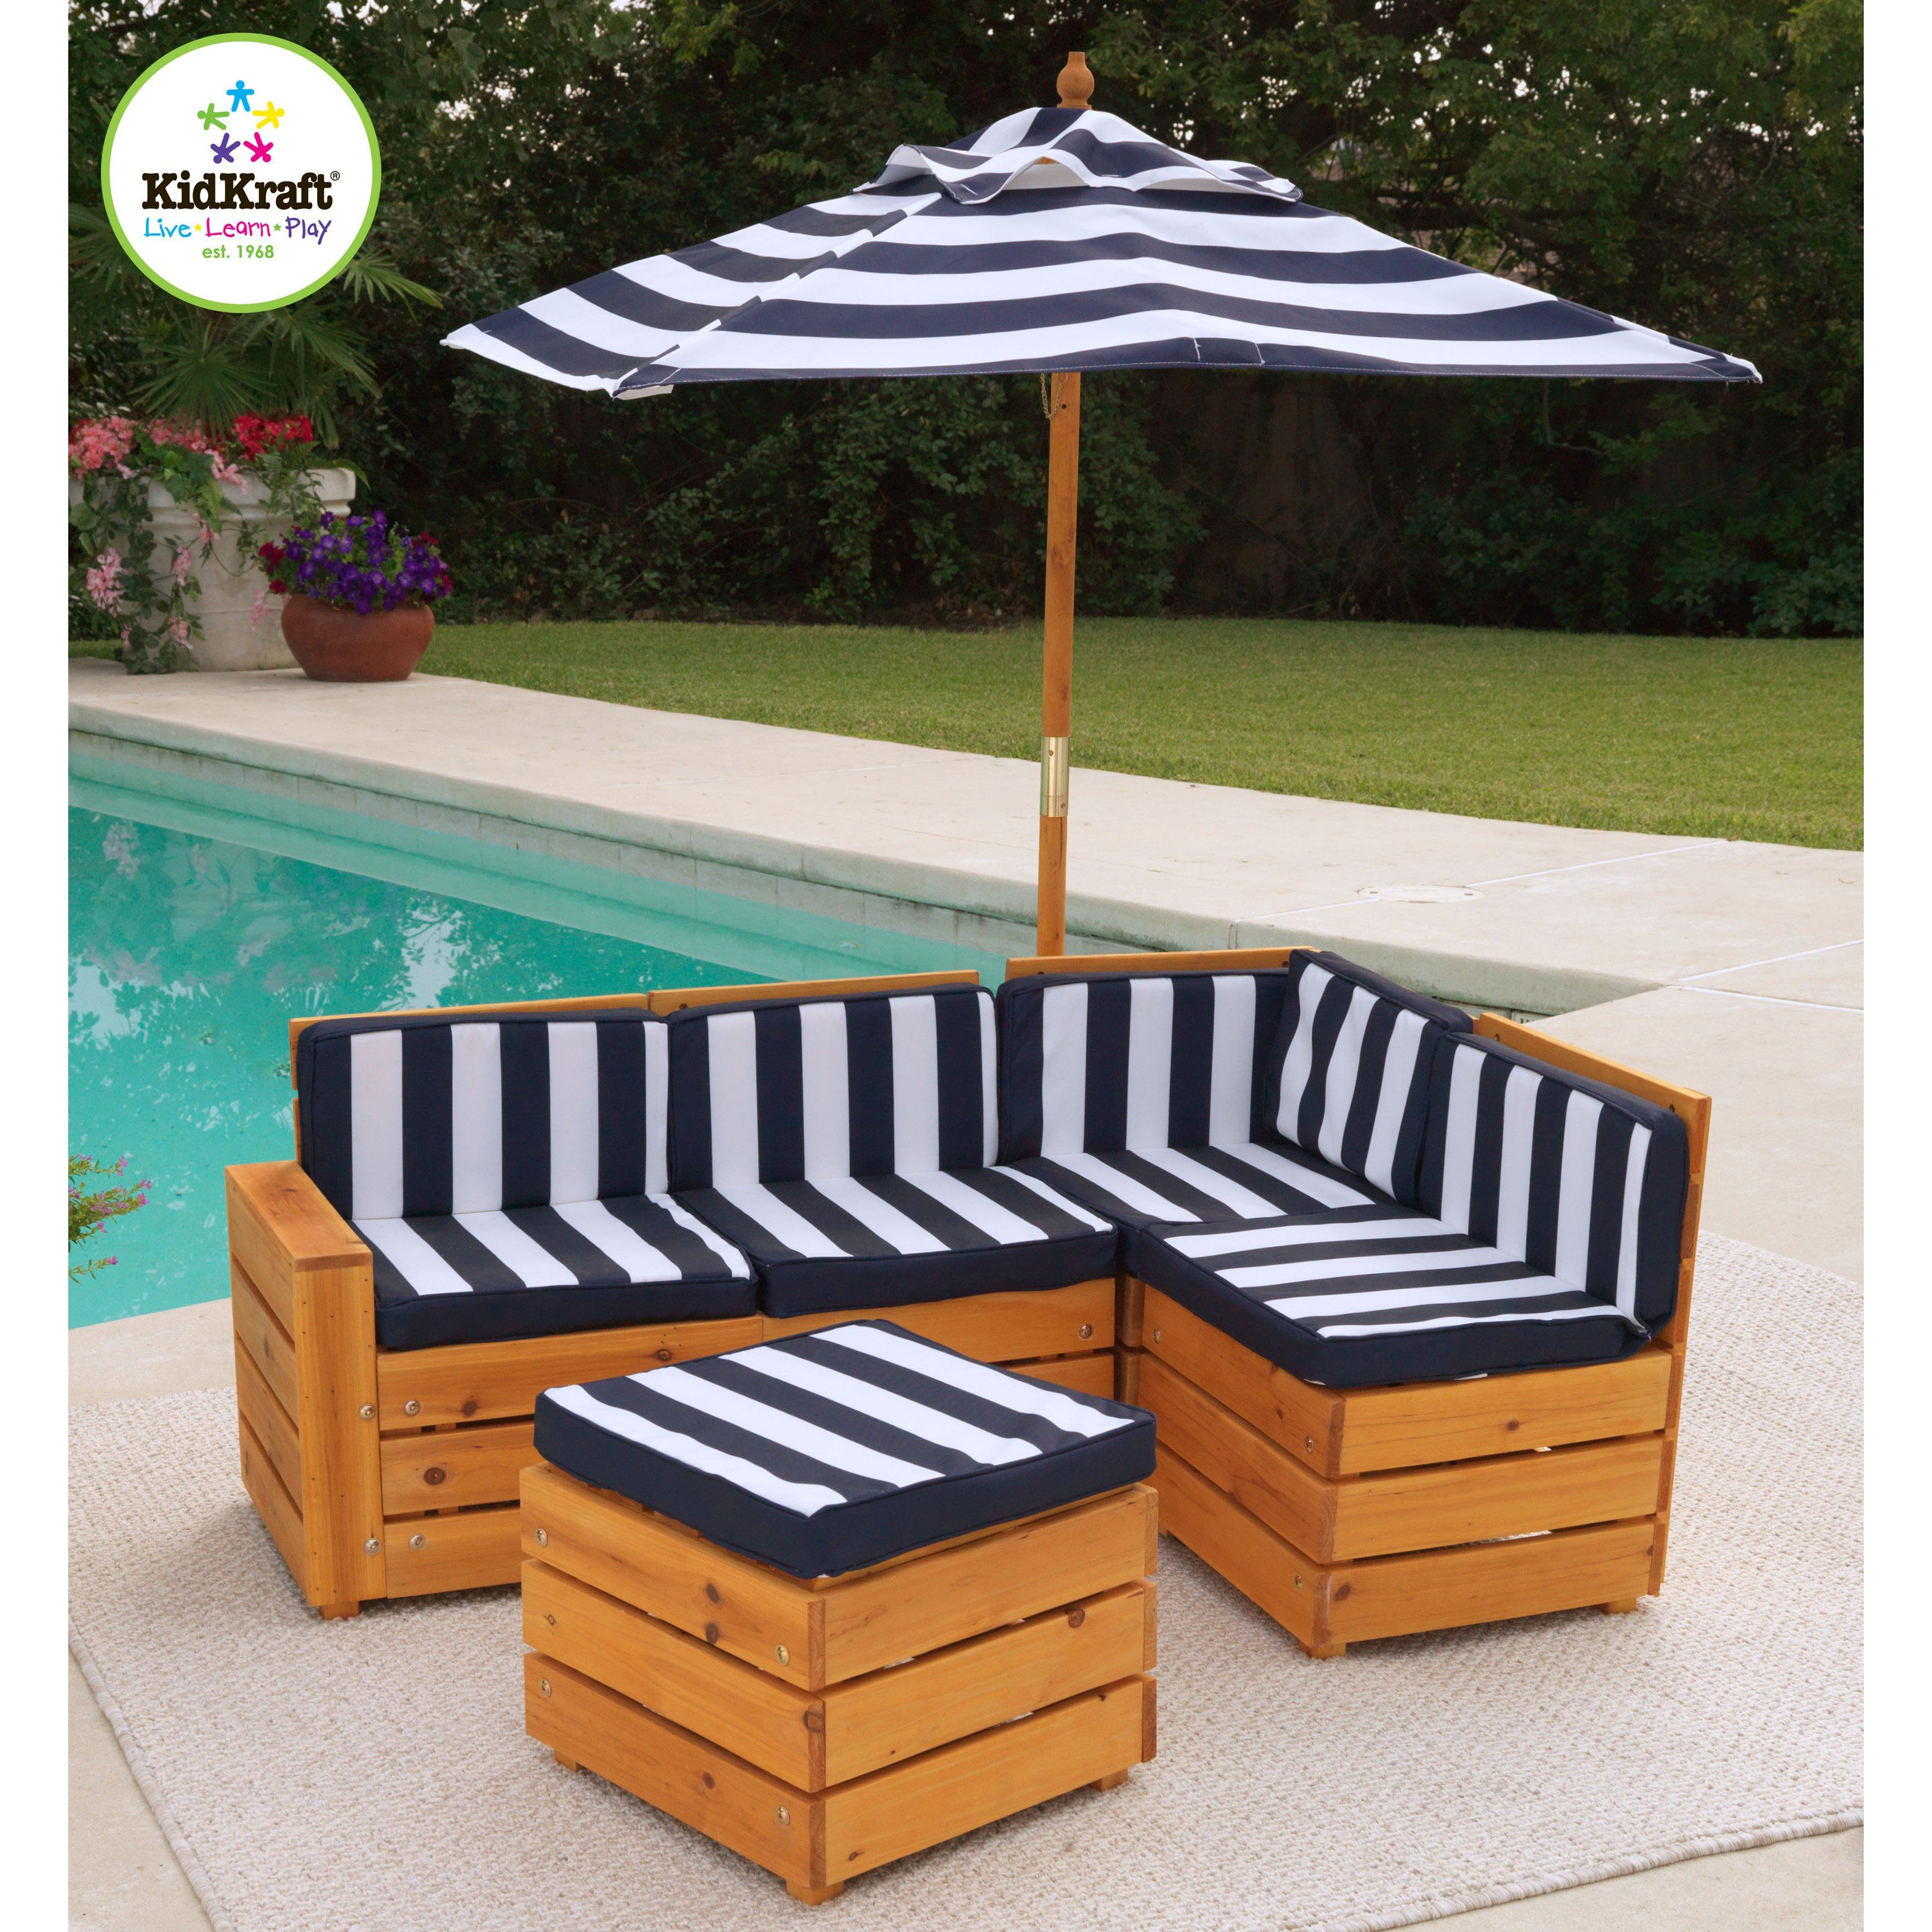 Have To Have It Kidkraft Kids Outdoor Sectional Patio Set 182 99 Kids Outdoor Furniture Nautical Outdoor Furniture Outdoor Kids